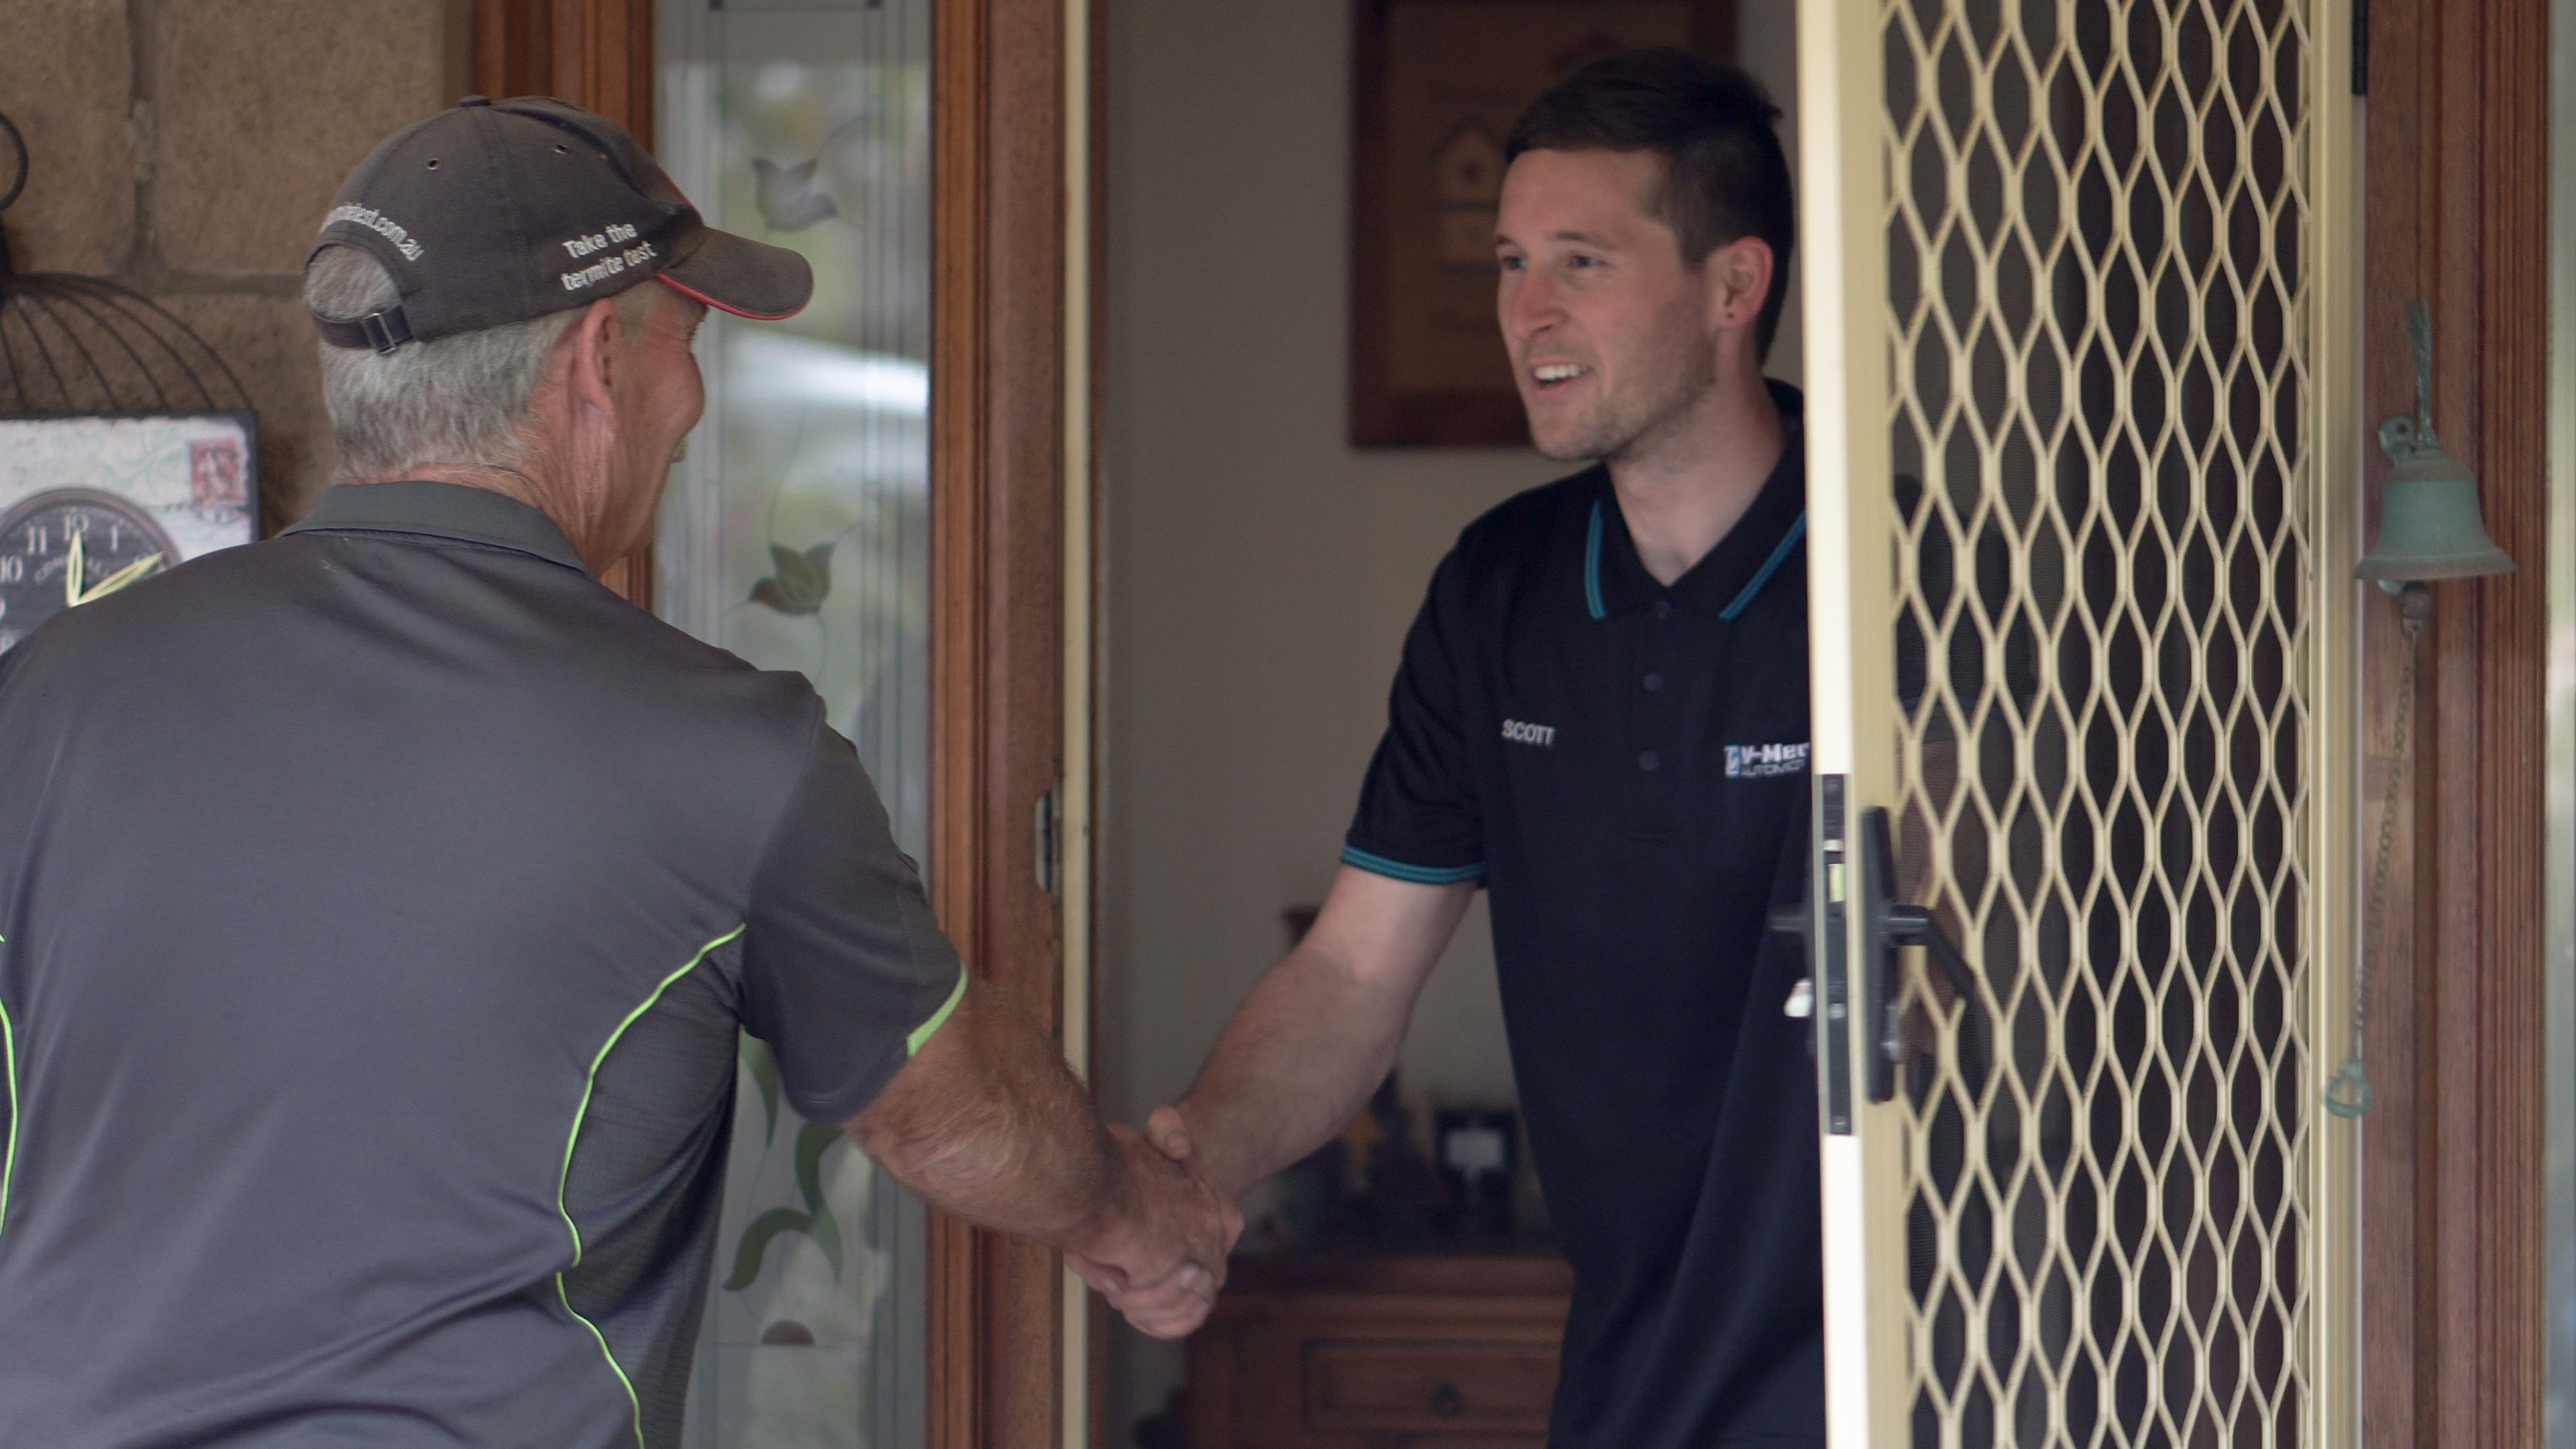 Suburban Pest Control technician greets client for a pest inspection